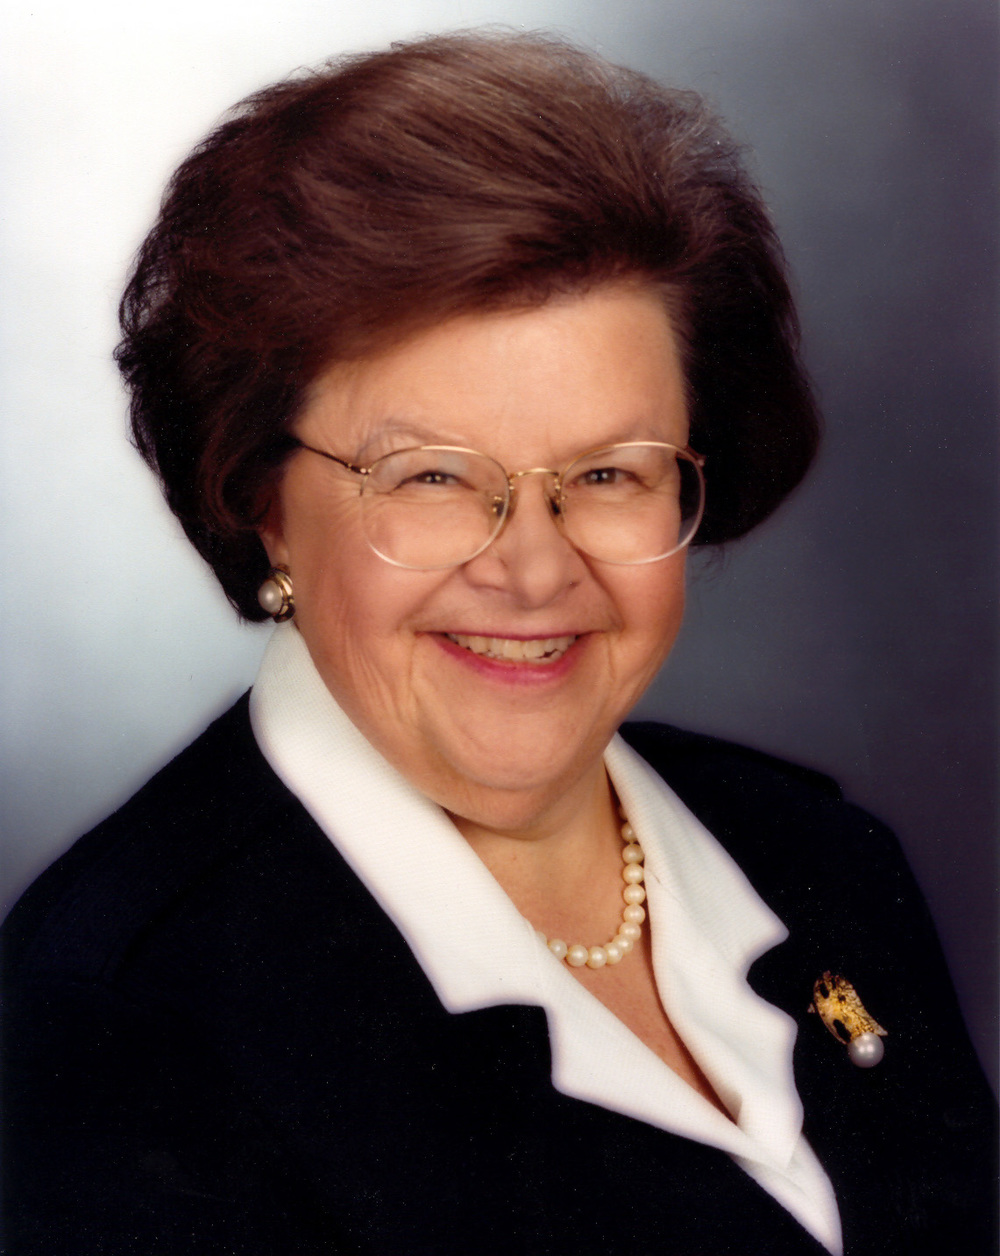 Maryland Senator Barbara Mikulski. Credit: Wikimedia Commons.